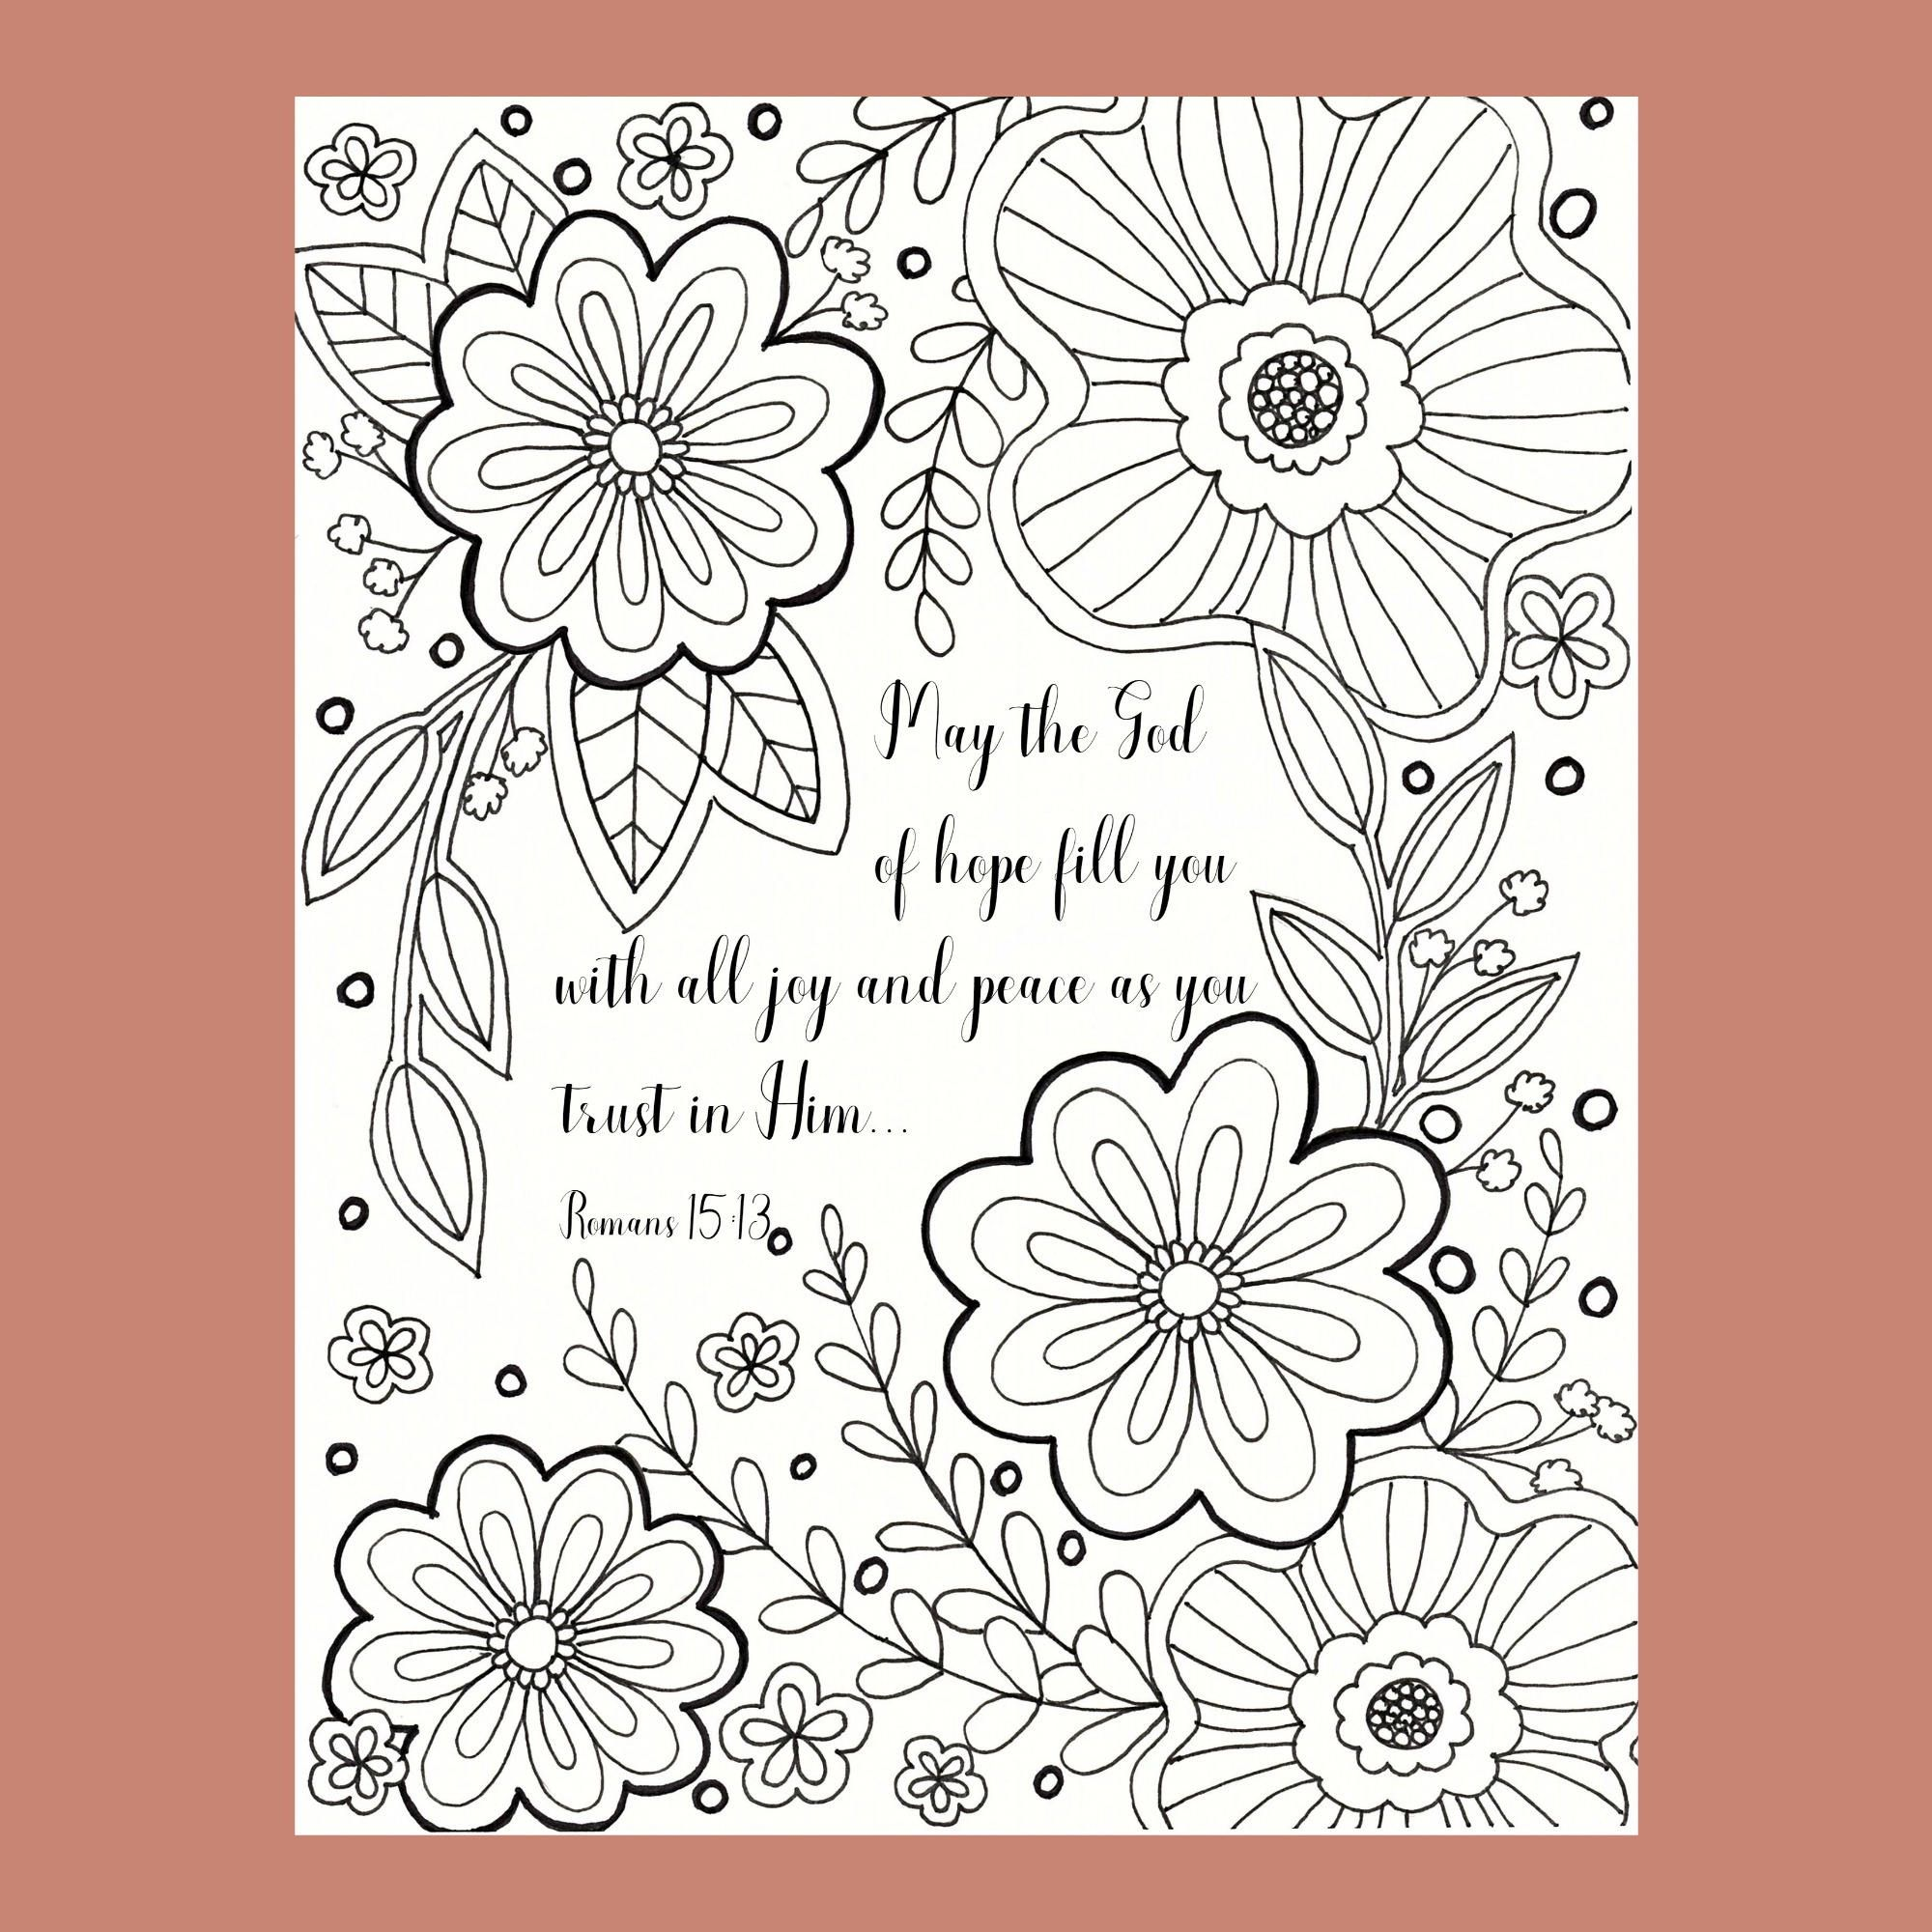 Bible Verse Coloring Page Scripture Coloring Christian Coloring